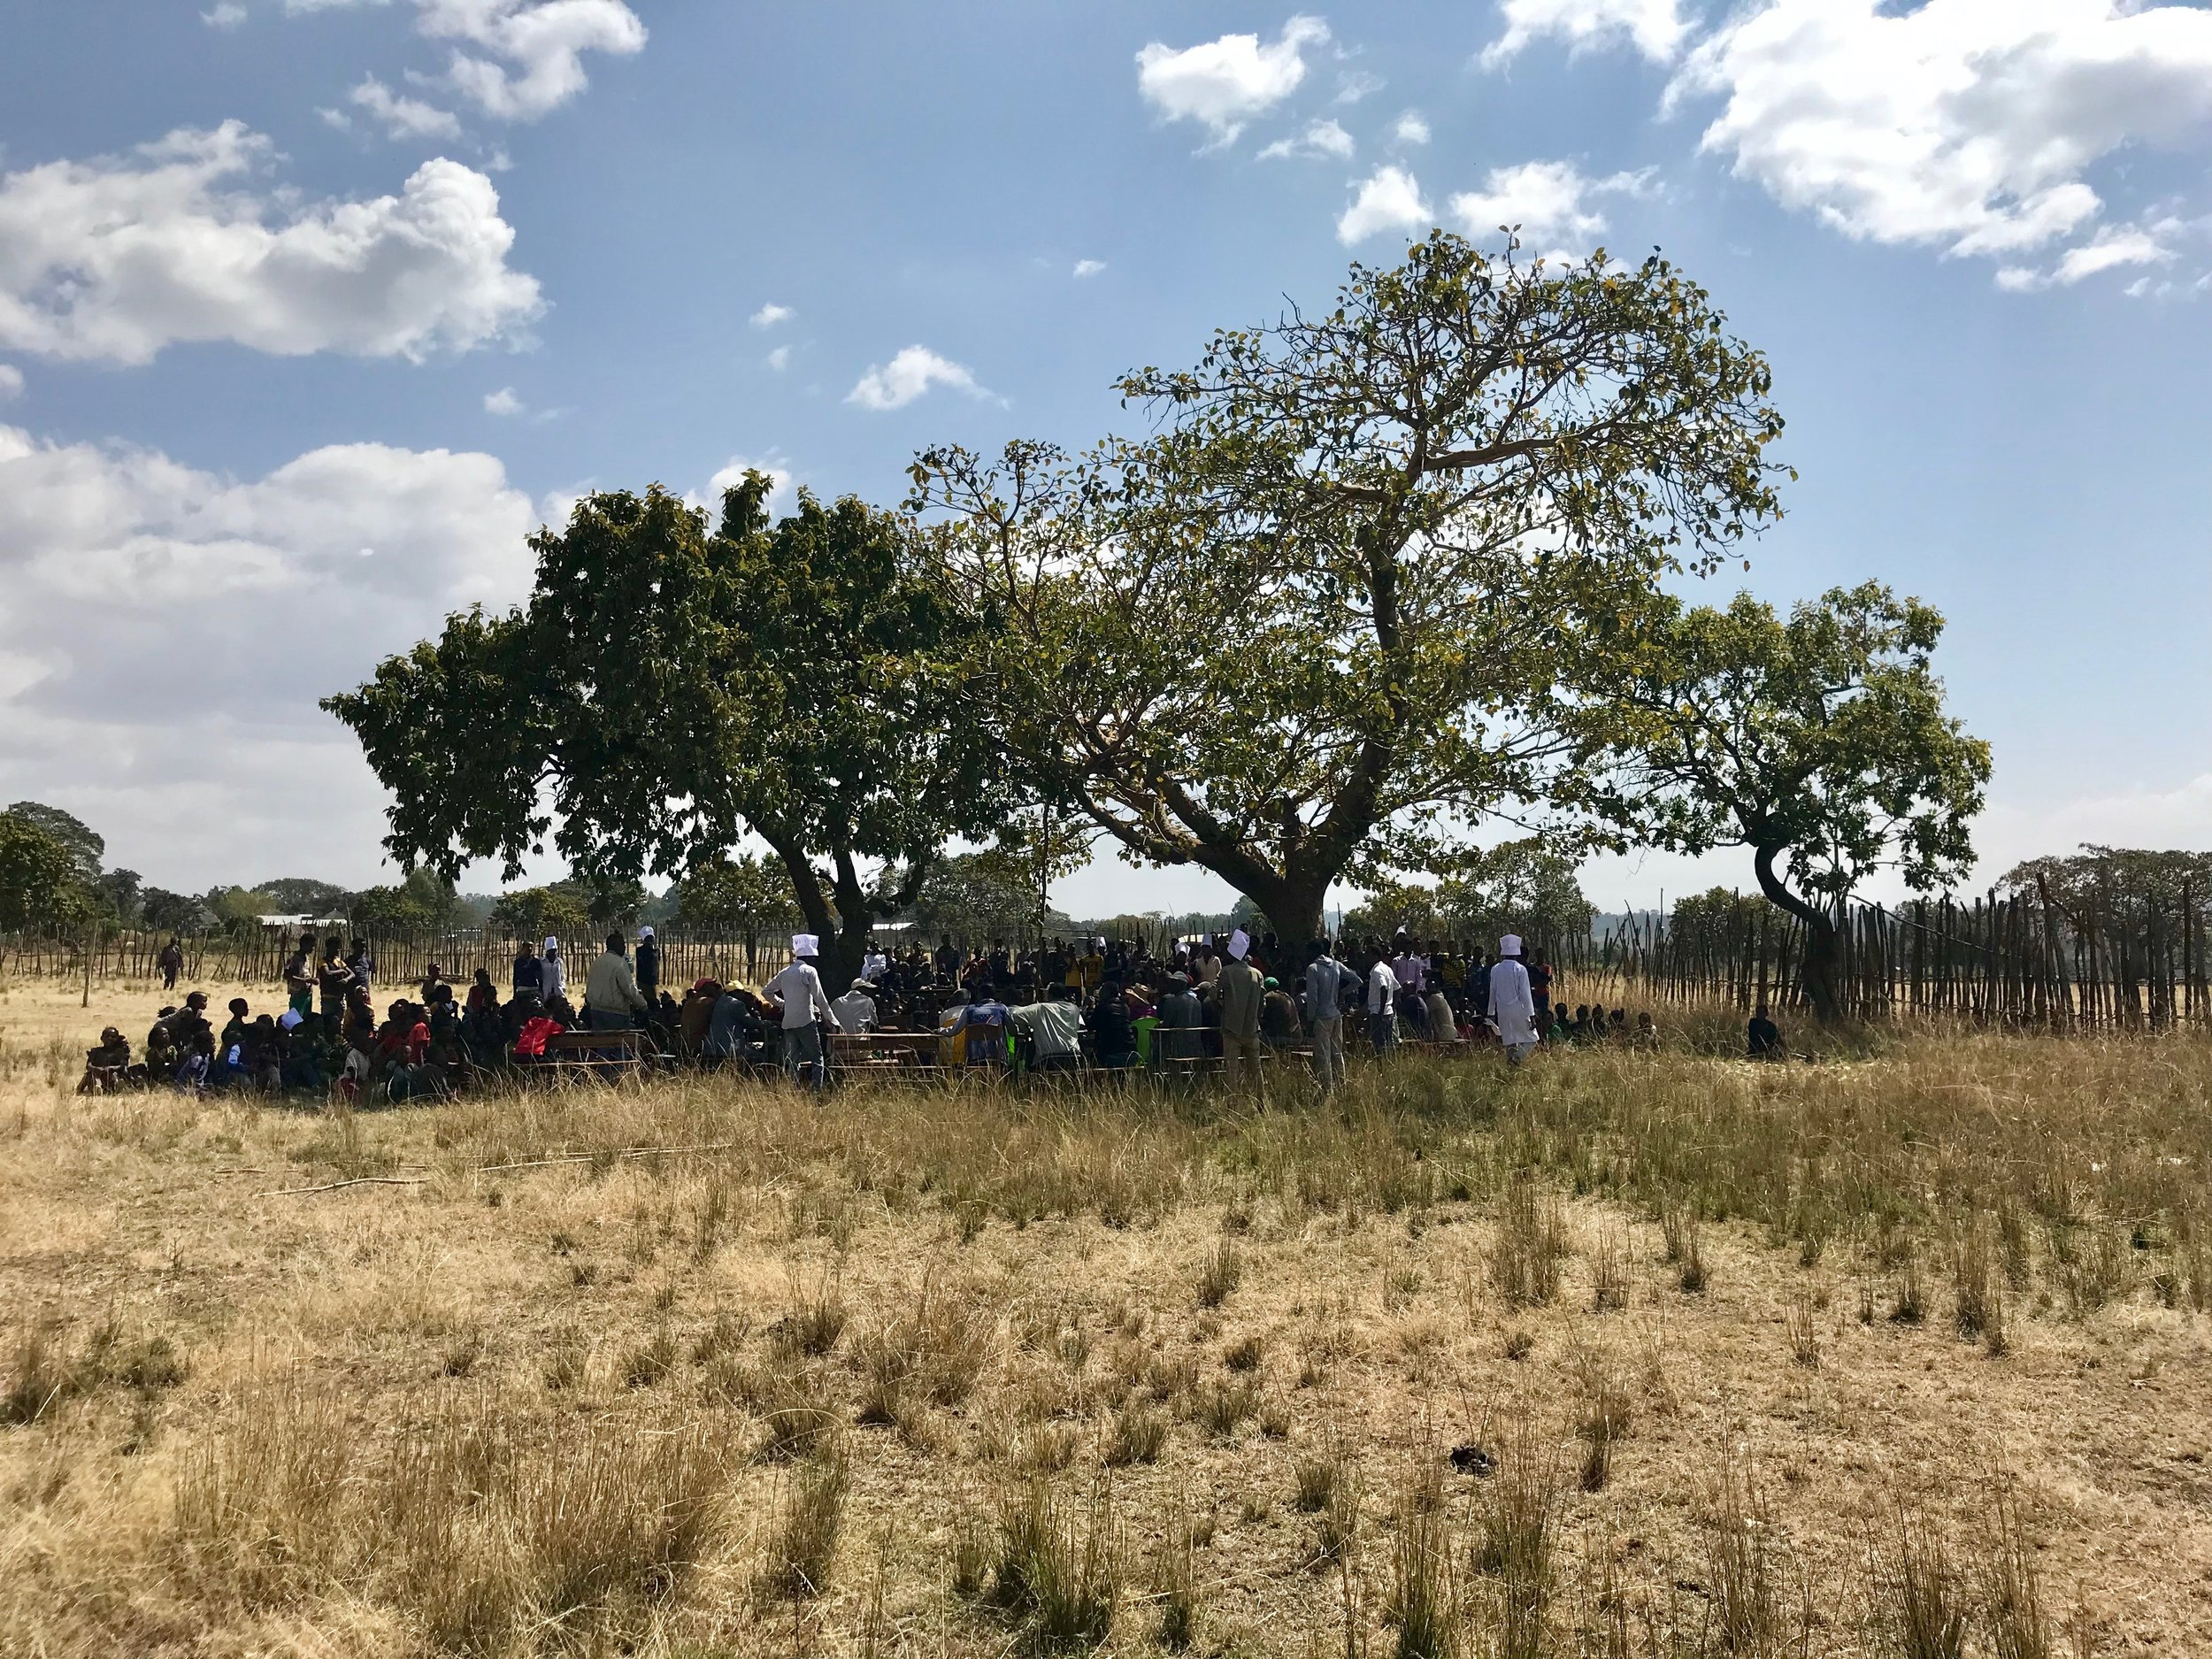 Students, teachers, community leaders, and representatives from Friends of Homacho gather for an all-school assembly under a tree in the middle of the school yard.